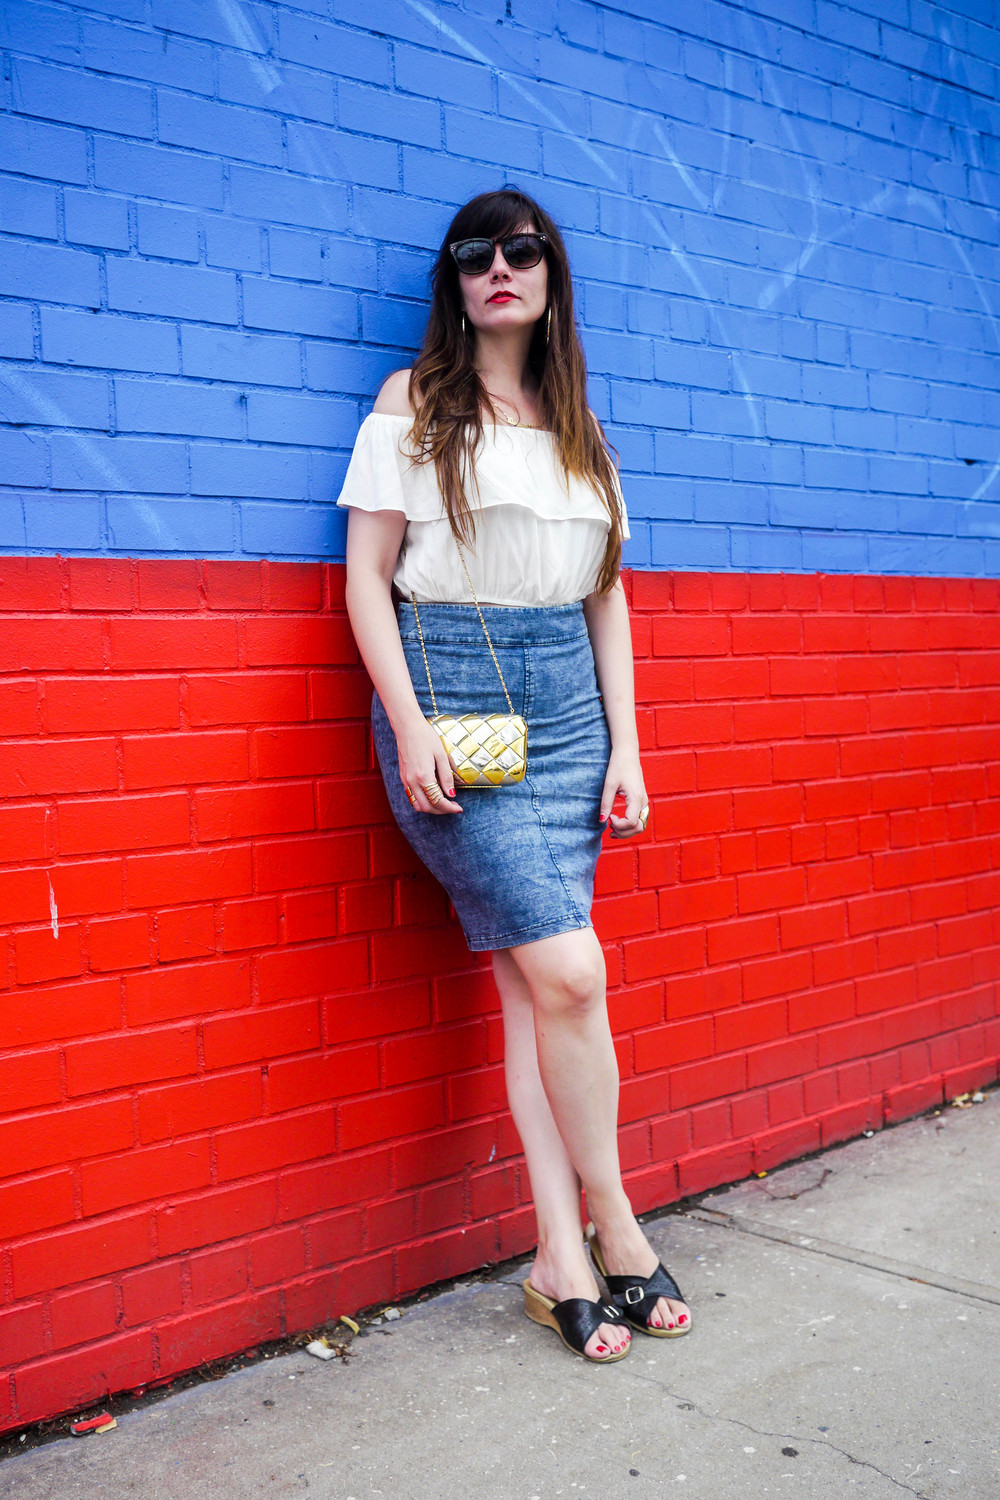 Top: ASOS , Skirt:   M  ystiqueboutique,    Shoes: Worishofer , Bag: Vintage, Sunglasses:  Ray-Ban   Wayfarer .